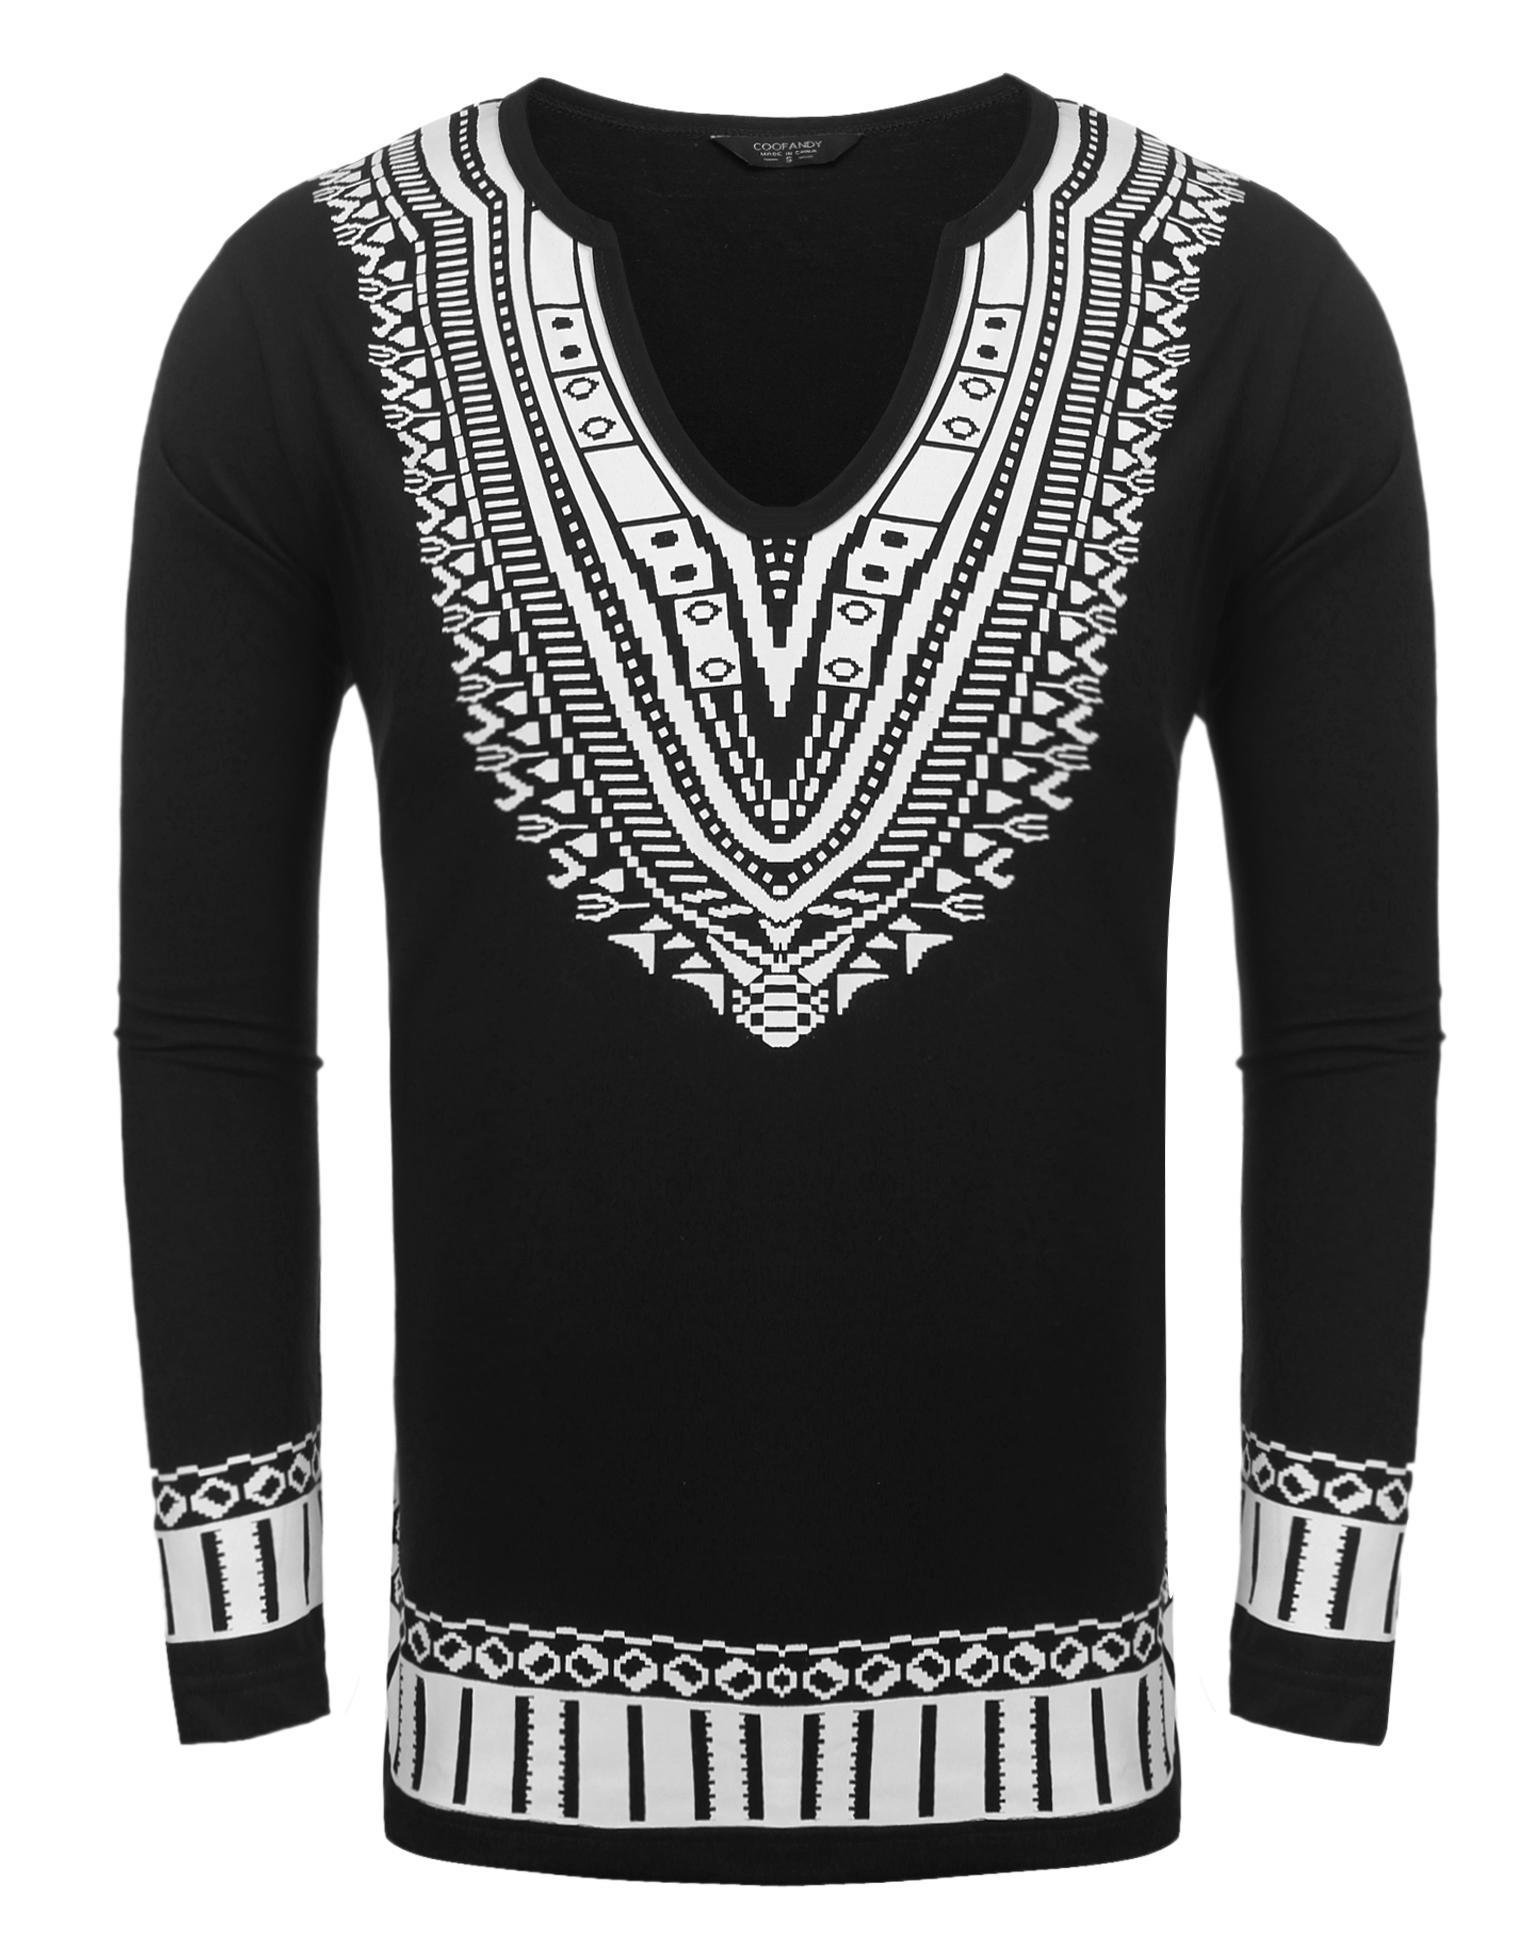 2faac41459f1c1 JINIDU Mens African Print Dashiki Shirt Fashion Long Sleeve T-Shirt ...